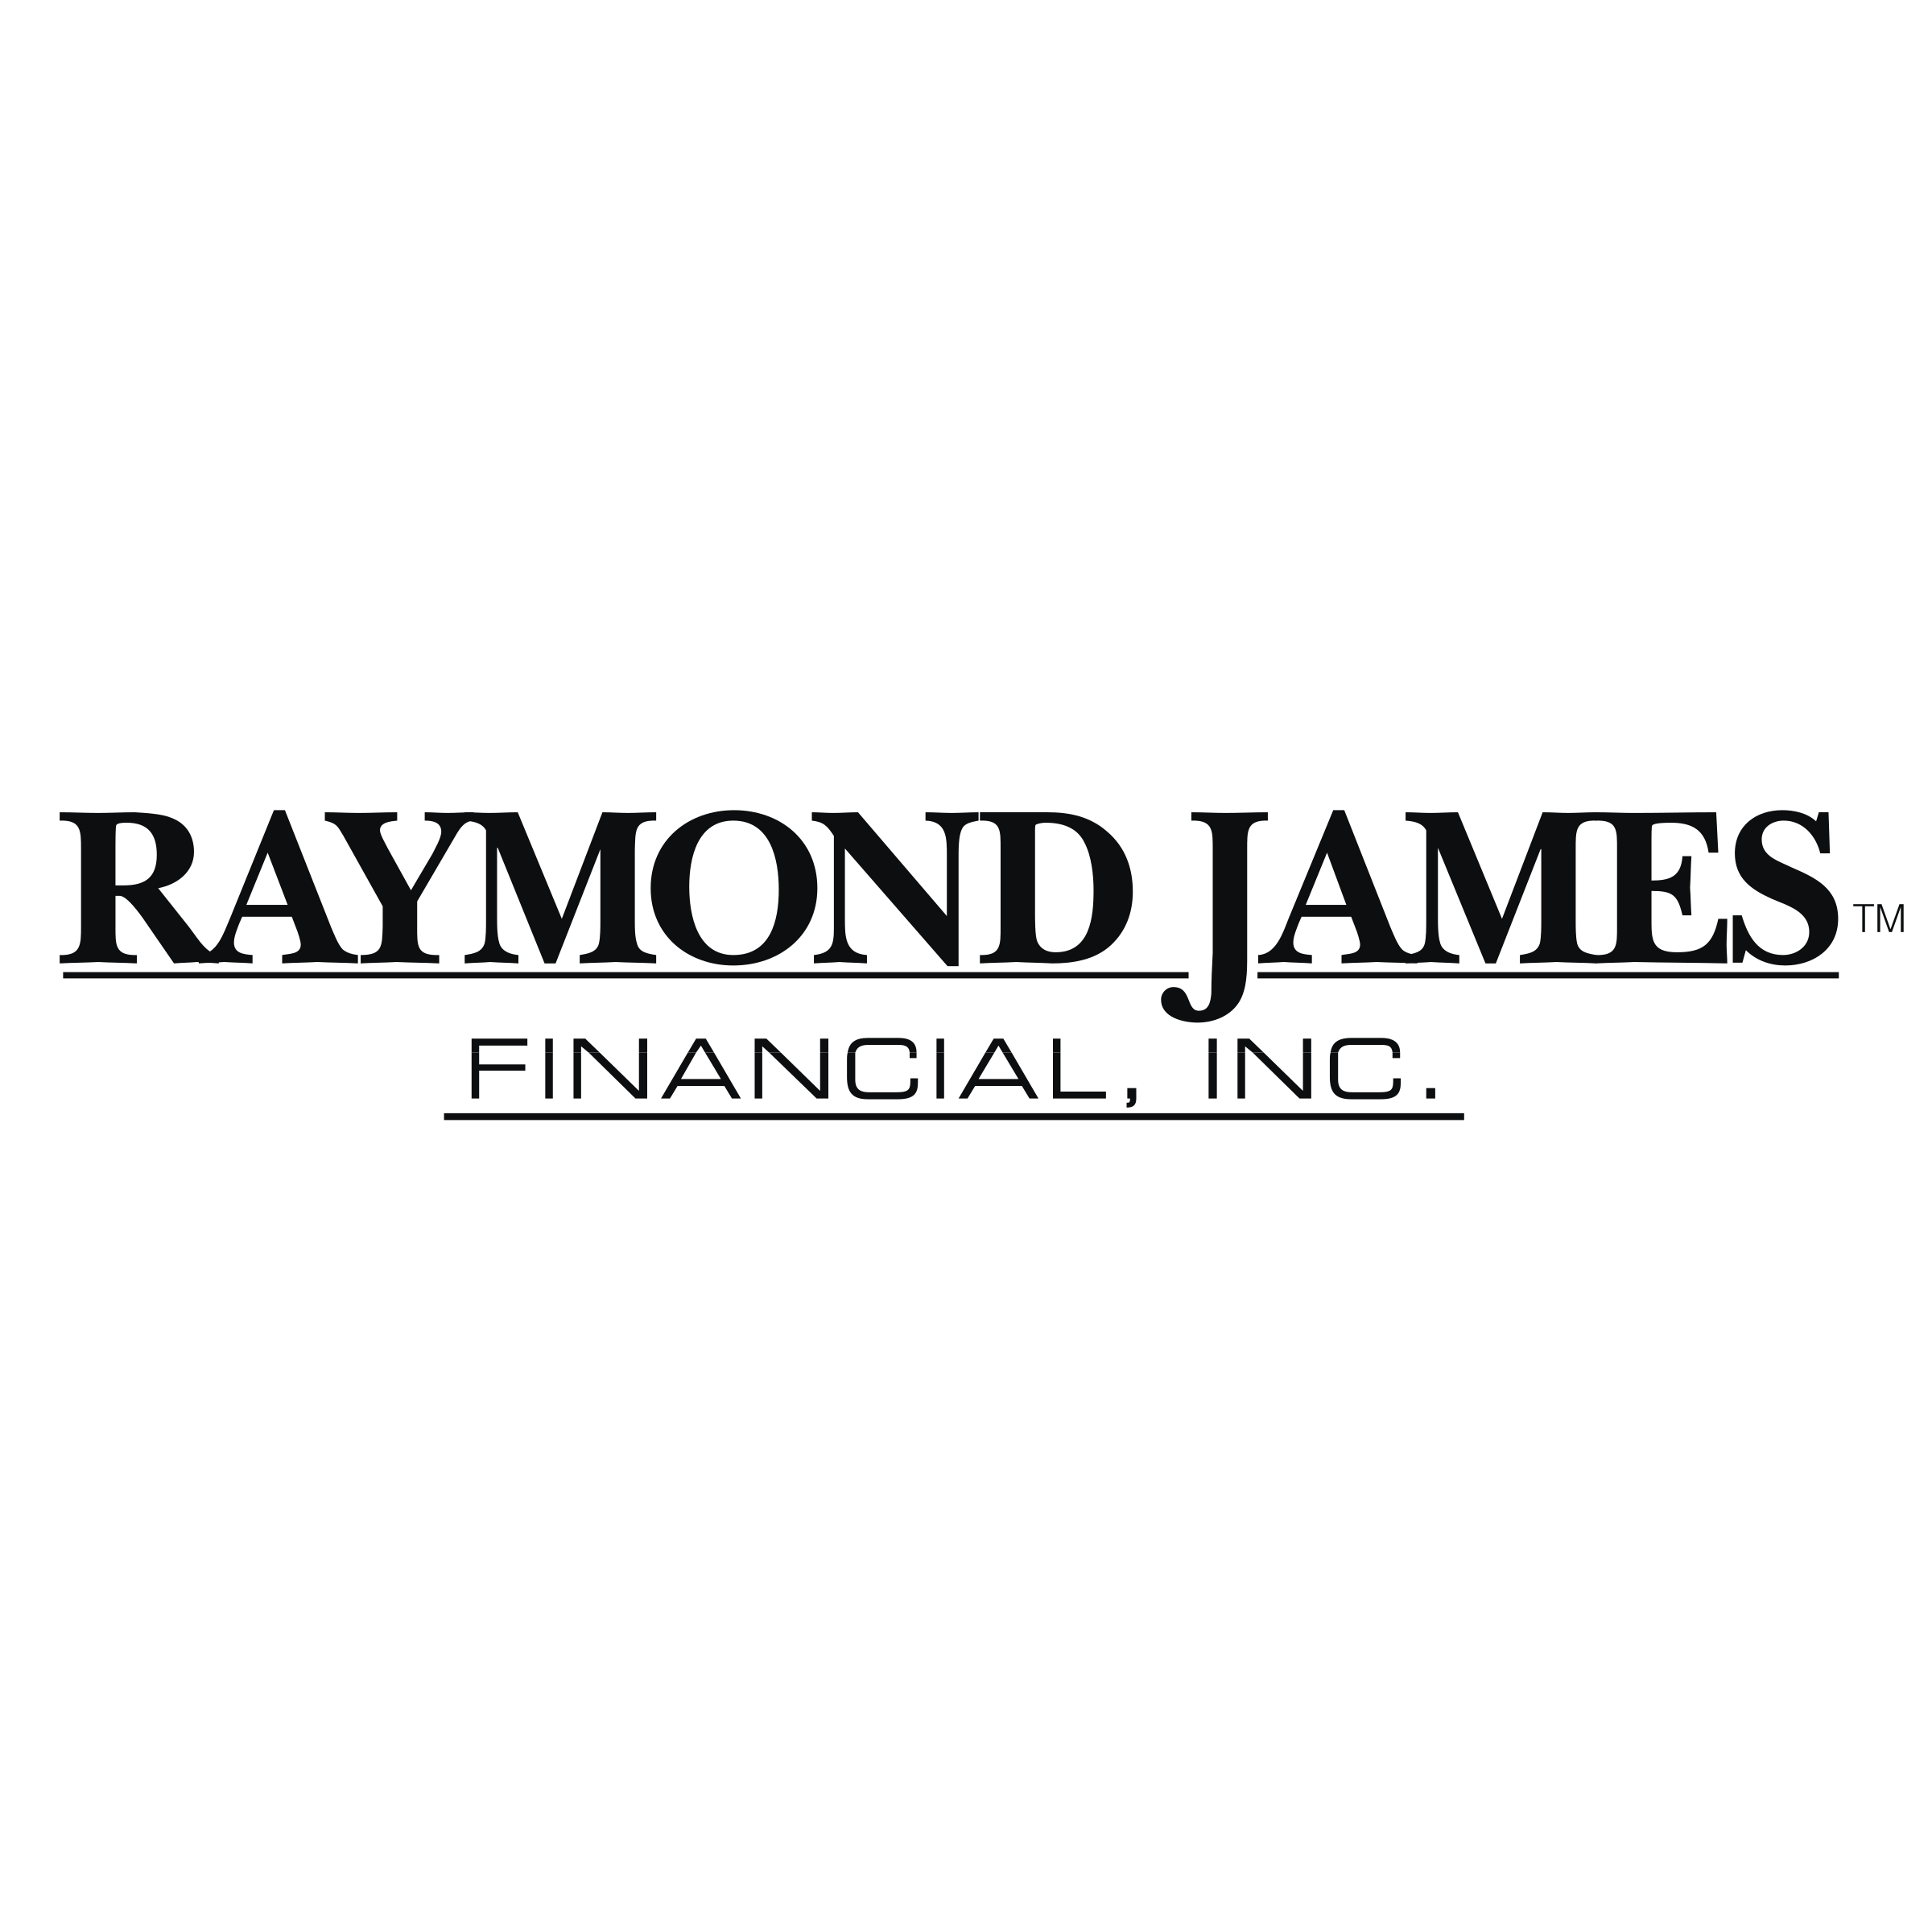 Vector financial png. Raymond james logo transparent